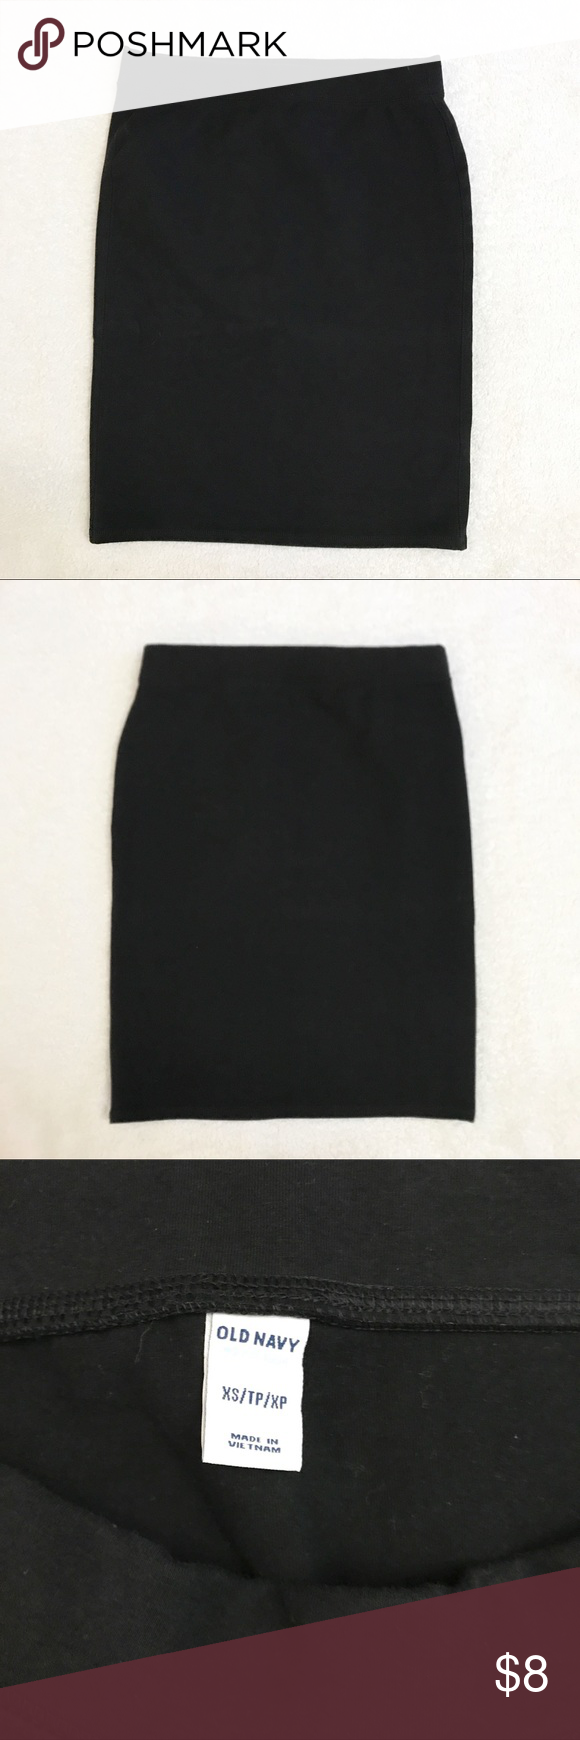 📍Old Navy Pencil Skirt Used. Good condition.  *** Items marked with 📍 --- are 2 for $10! Make an offer for $10 and I will accept. Happy Poshing! Old Navy Skirts Pencil